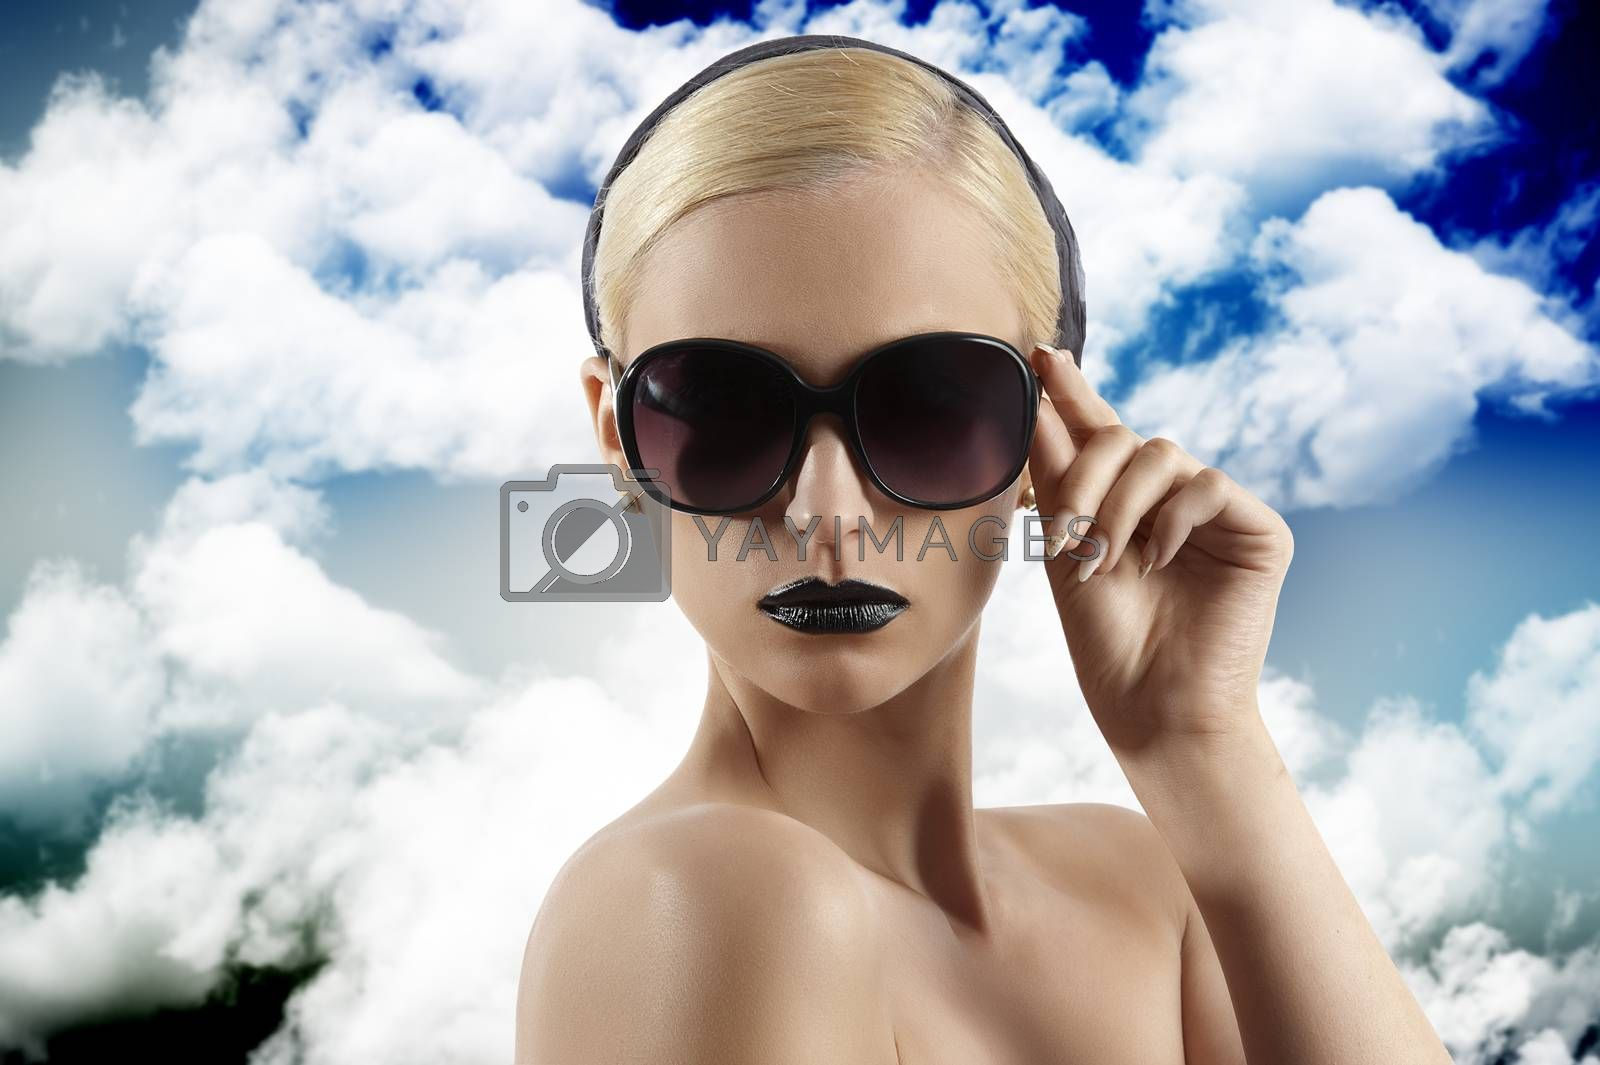 Royalty free image of fashion shot of blond girl with sunglasses looking at the camera by fotoCD